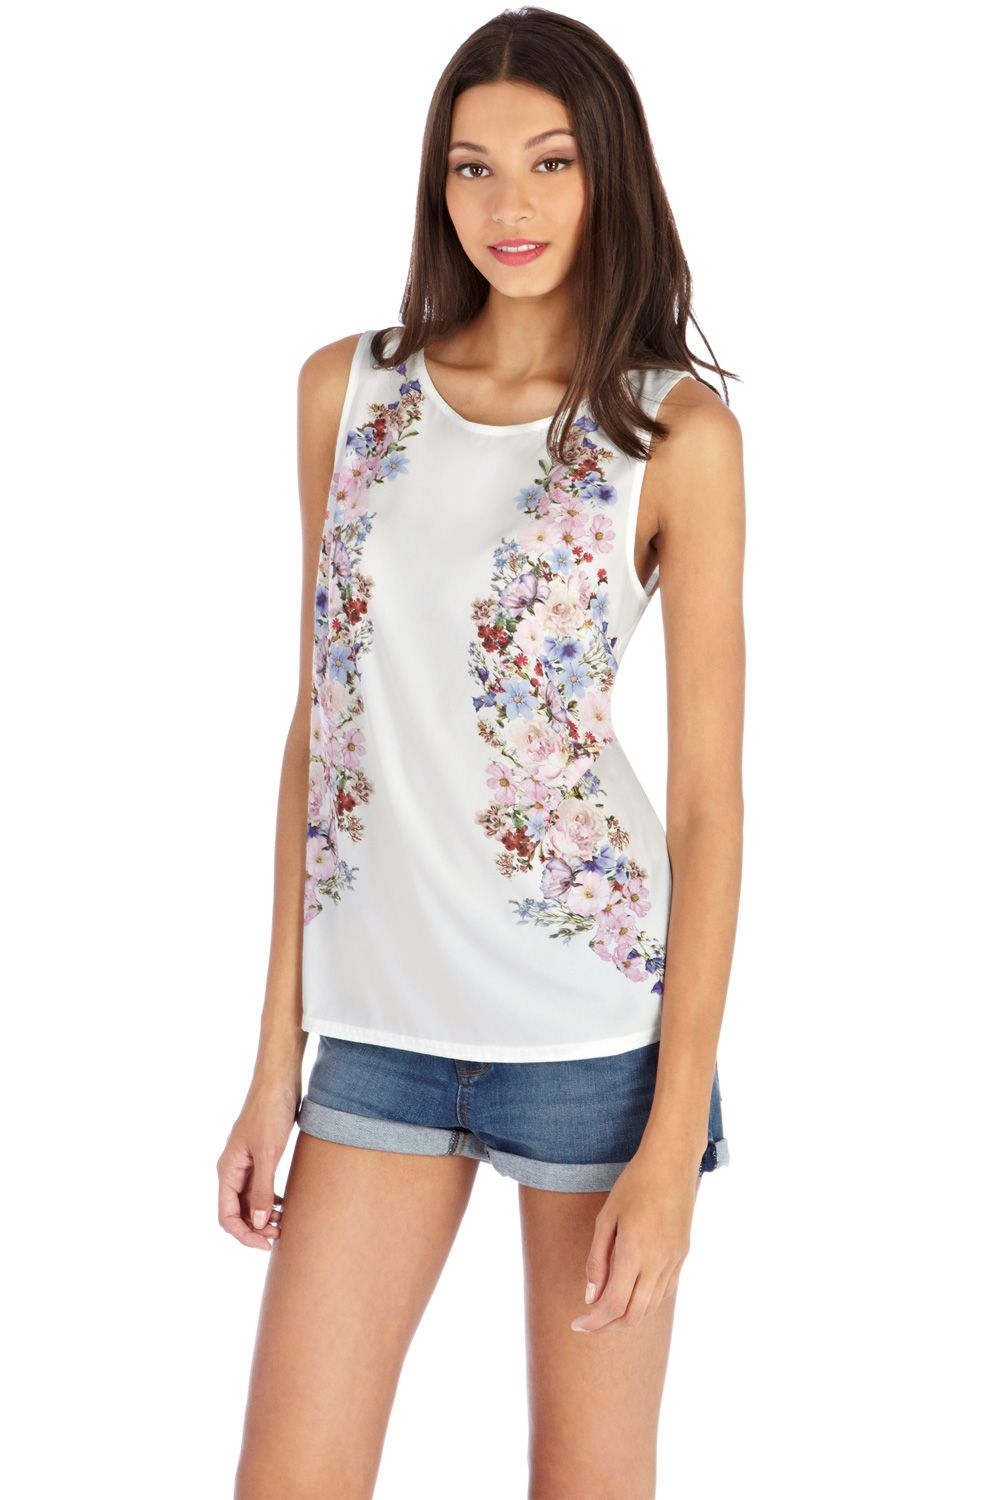 Mirror floral border shell top